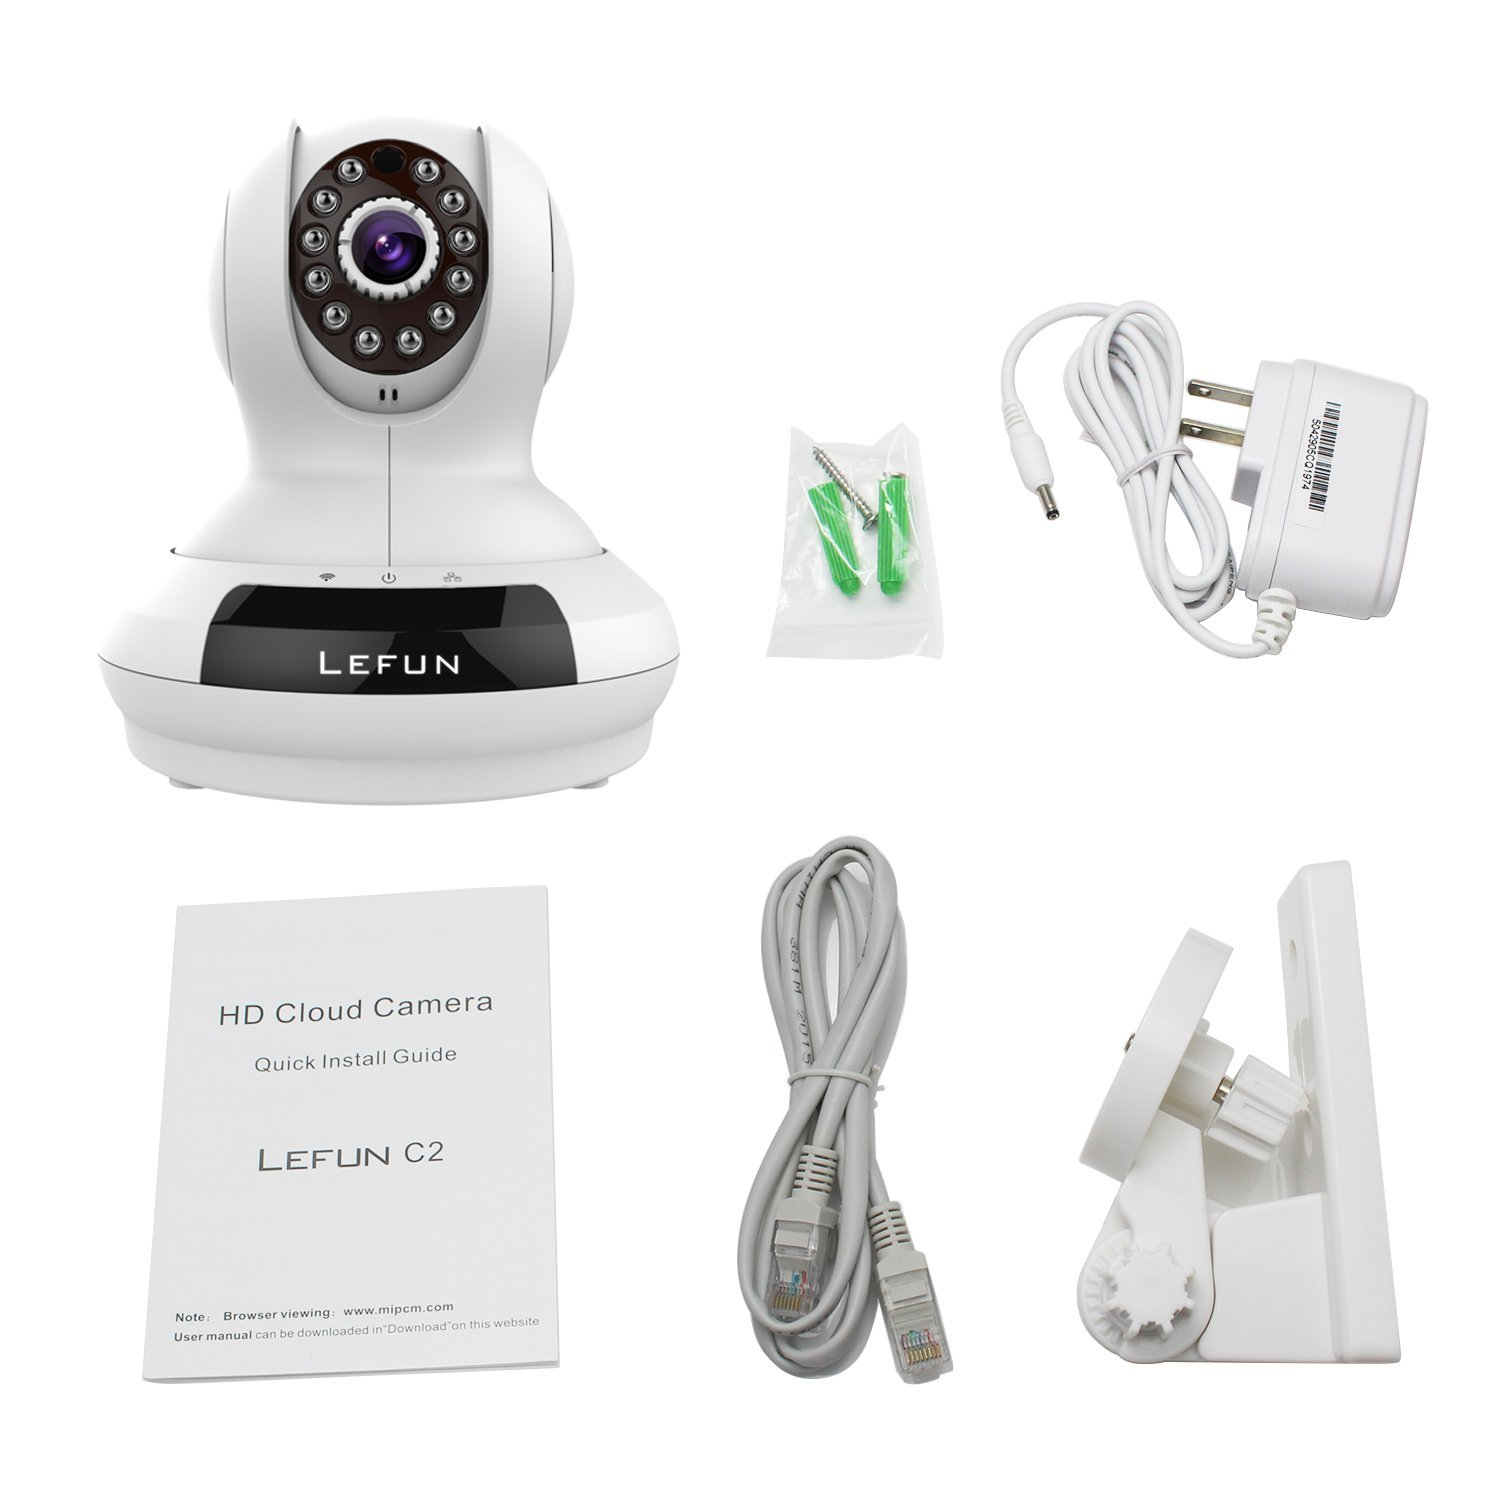 LeFun WiFi Security Systems